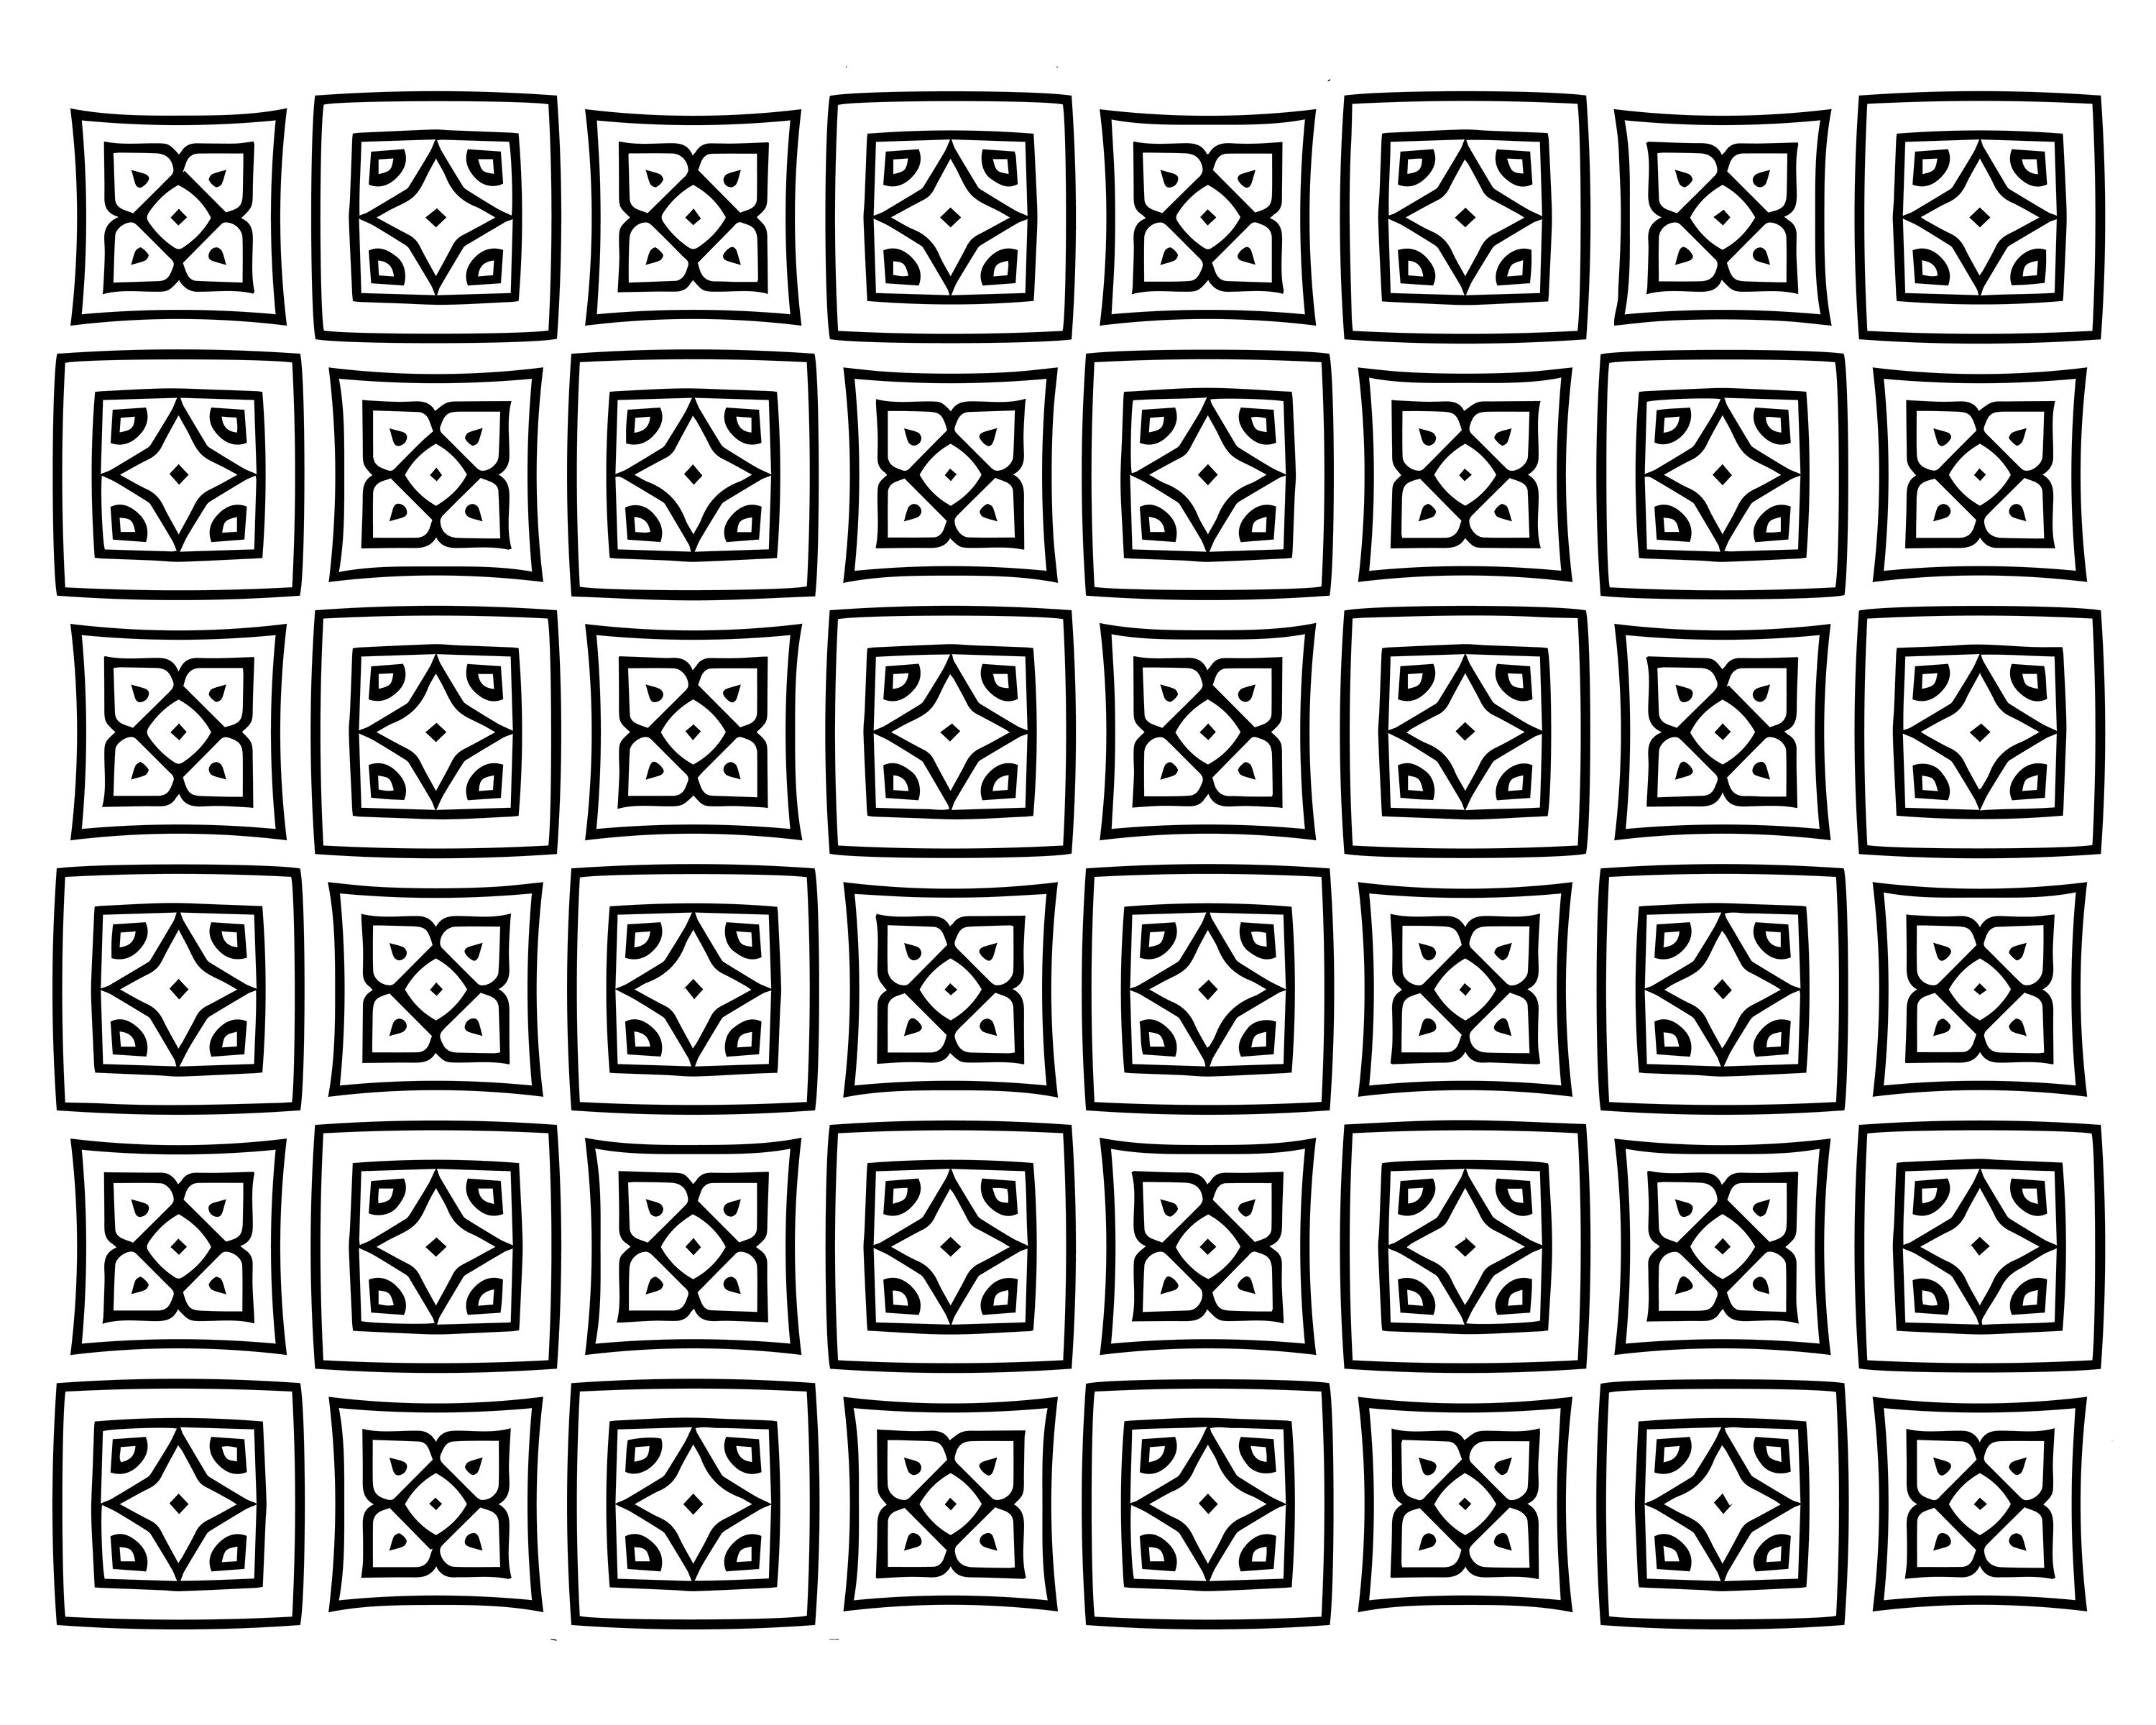 FREE Square Quilt Pattern Adult